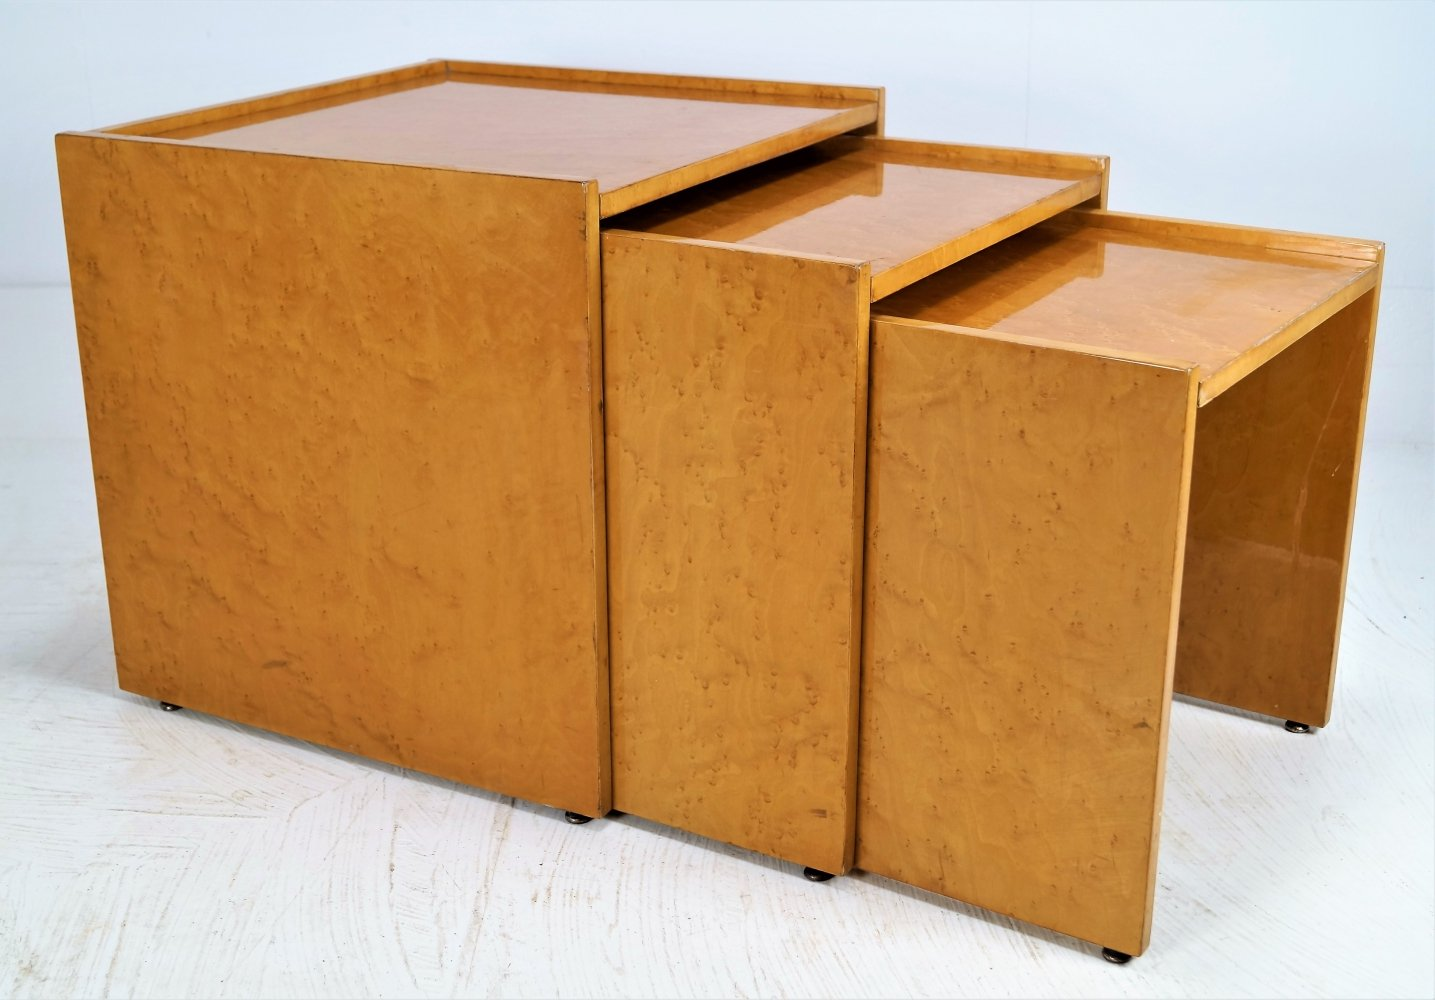 Karelian birch nesting tables, 1970s